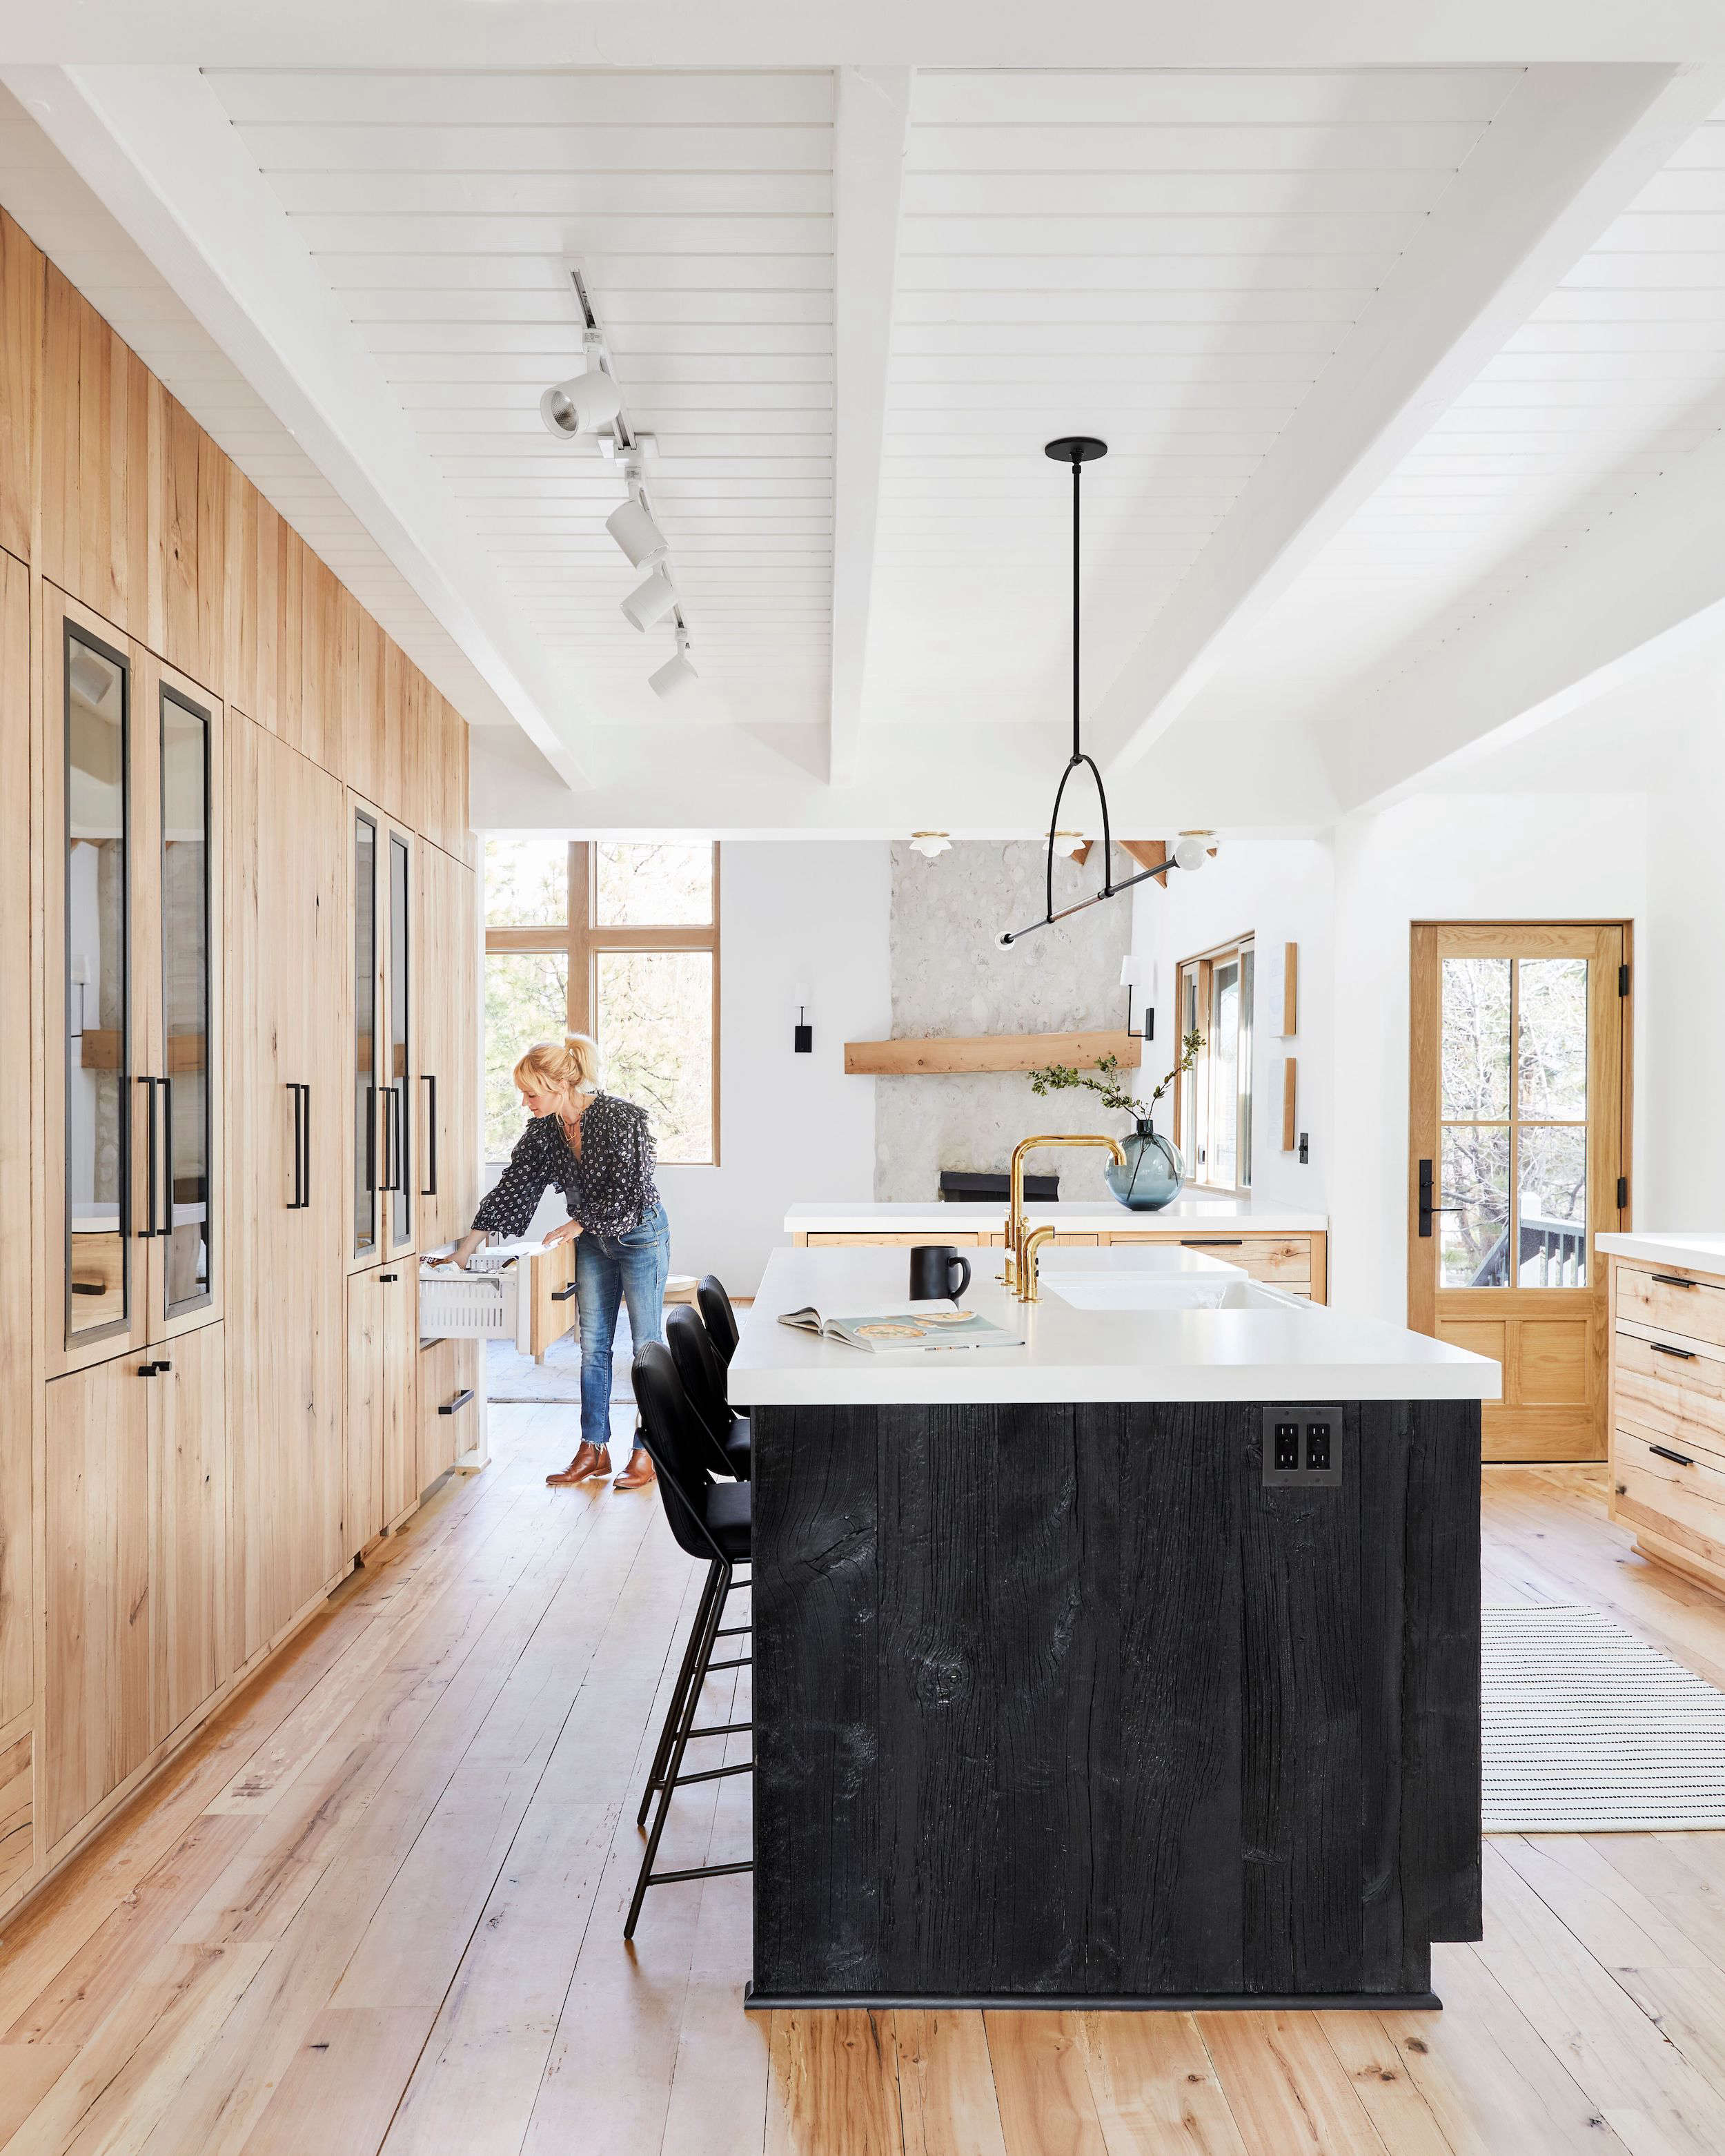 10 Above-and-Beyond Kitchen Organization Ideas from Emily ... on mountain contemporary bedroom, monticello bedroom, salmon bedroom, london bedroom, murphy bedroom, lexington bedroom, harrison bedroom, pendleton bedroom, walnut bedroom, rustic bedroom, modern luxury bedroom, mexico bedroom, forest inspired bedroom, cabin bedroom, mount vernon bedroom, paris bedroom,